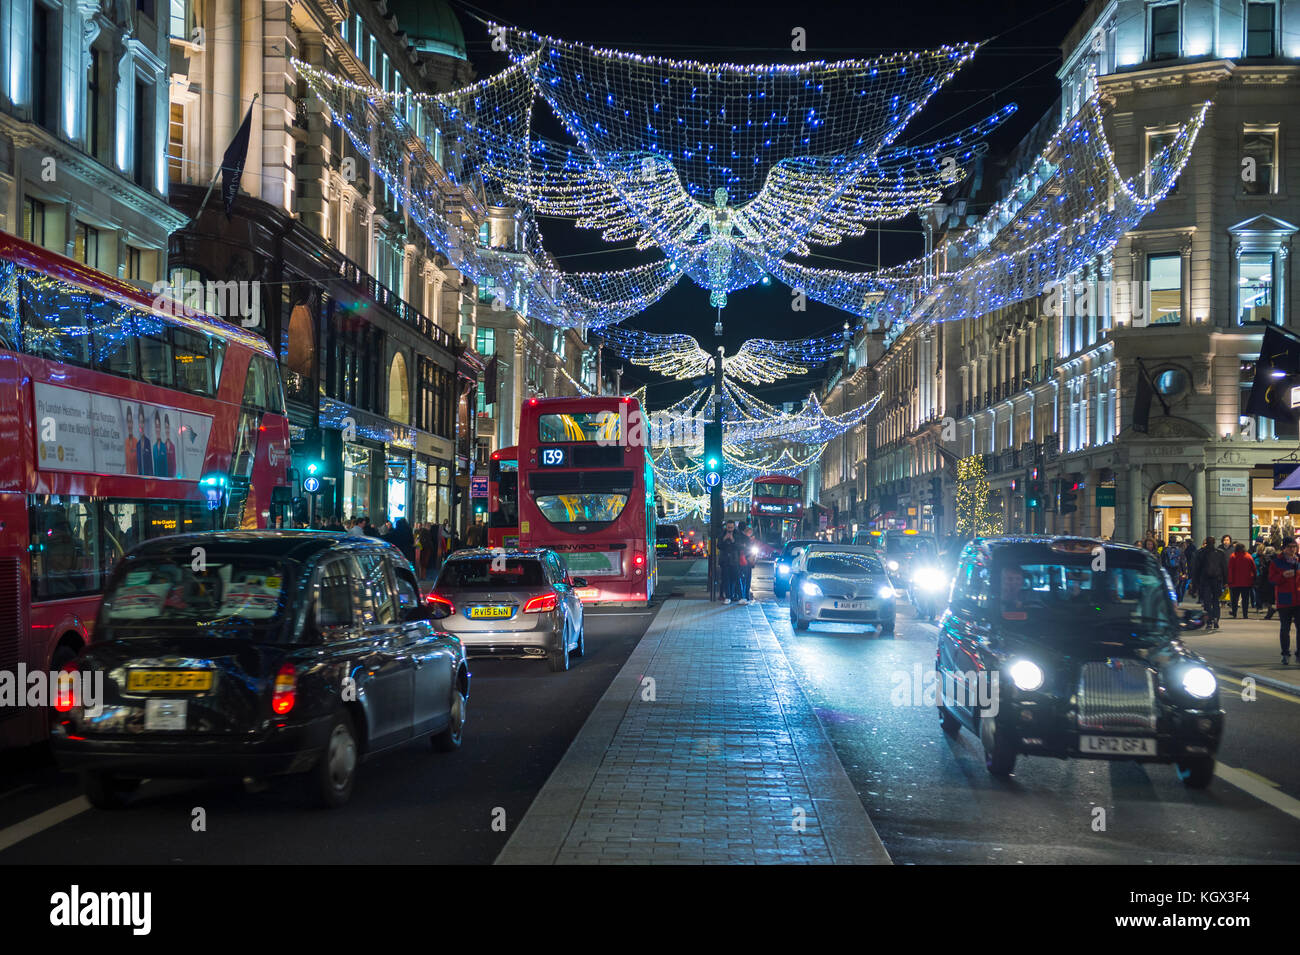 LONDON - NOVEMBER 18, 2016: Red double-decker buses pass under twinkling Christmas angels lighting up the upscale - Stock Image